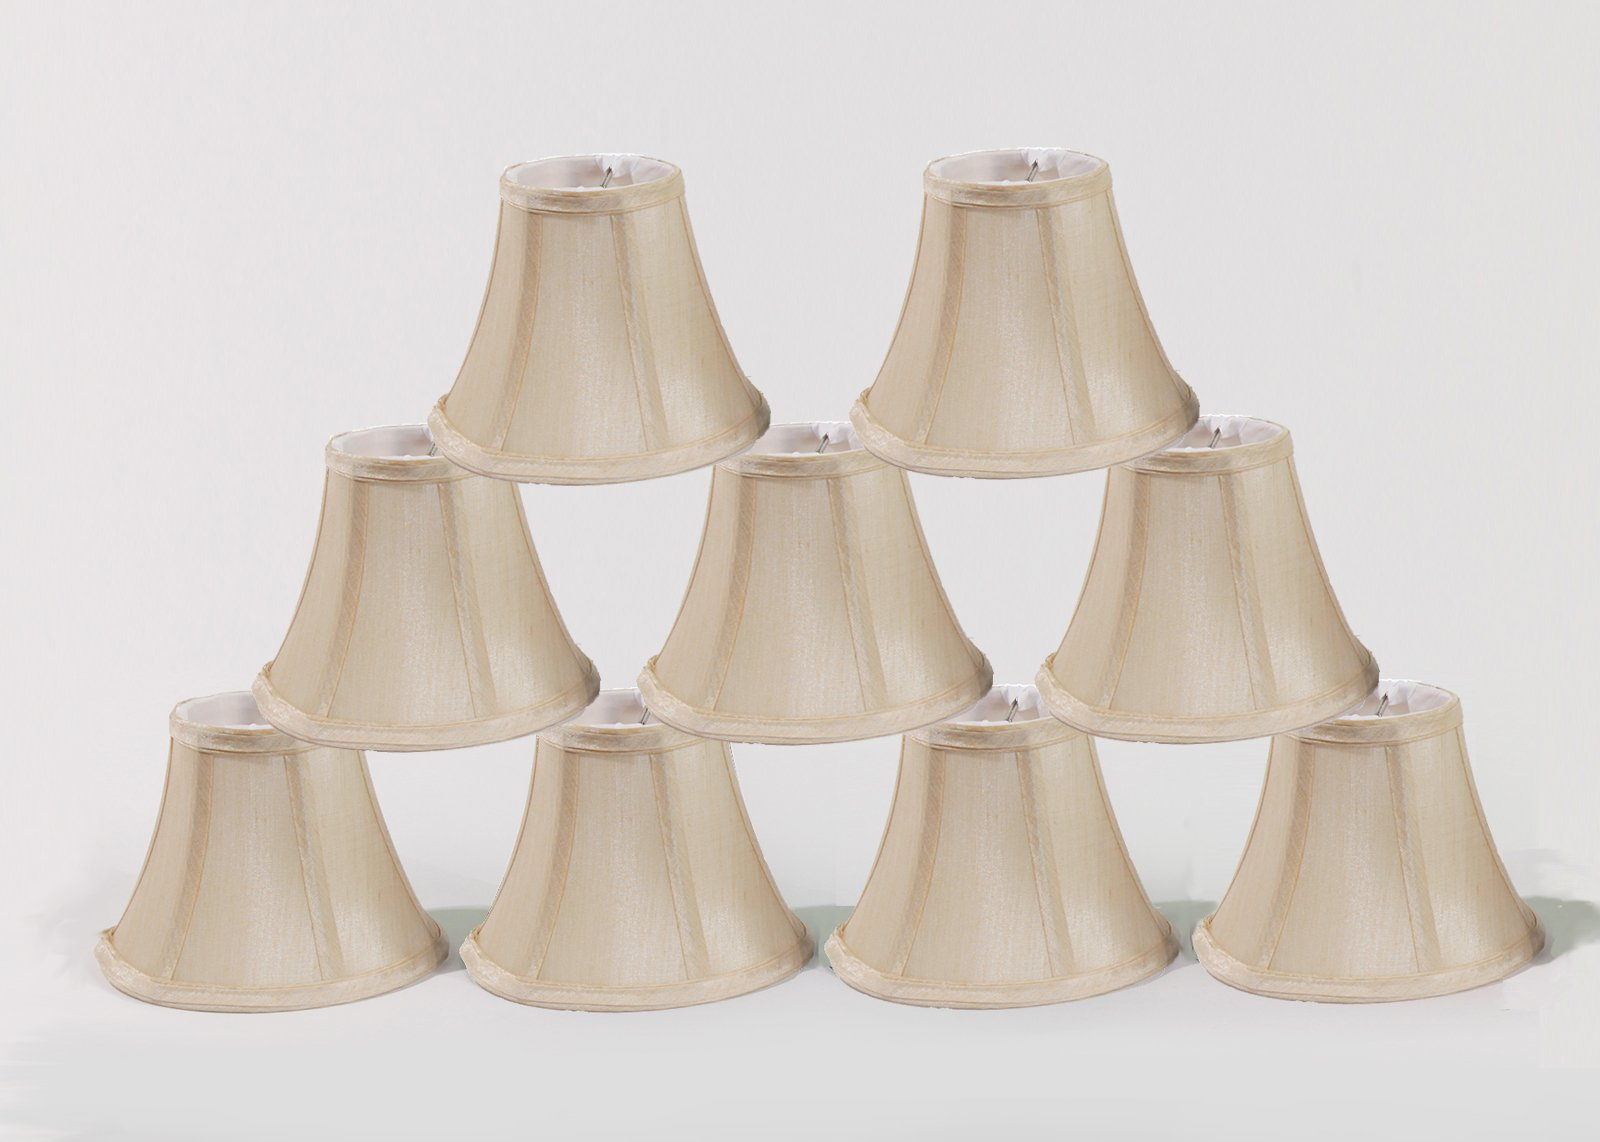 Urbanest Chandelier Lamp Shades, Set of 9, Soft Bell 3''x 6''x 5'' Cream, Clip on by Urbanest (Image #1)